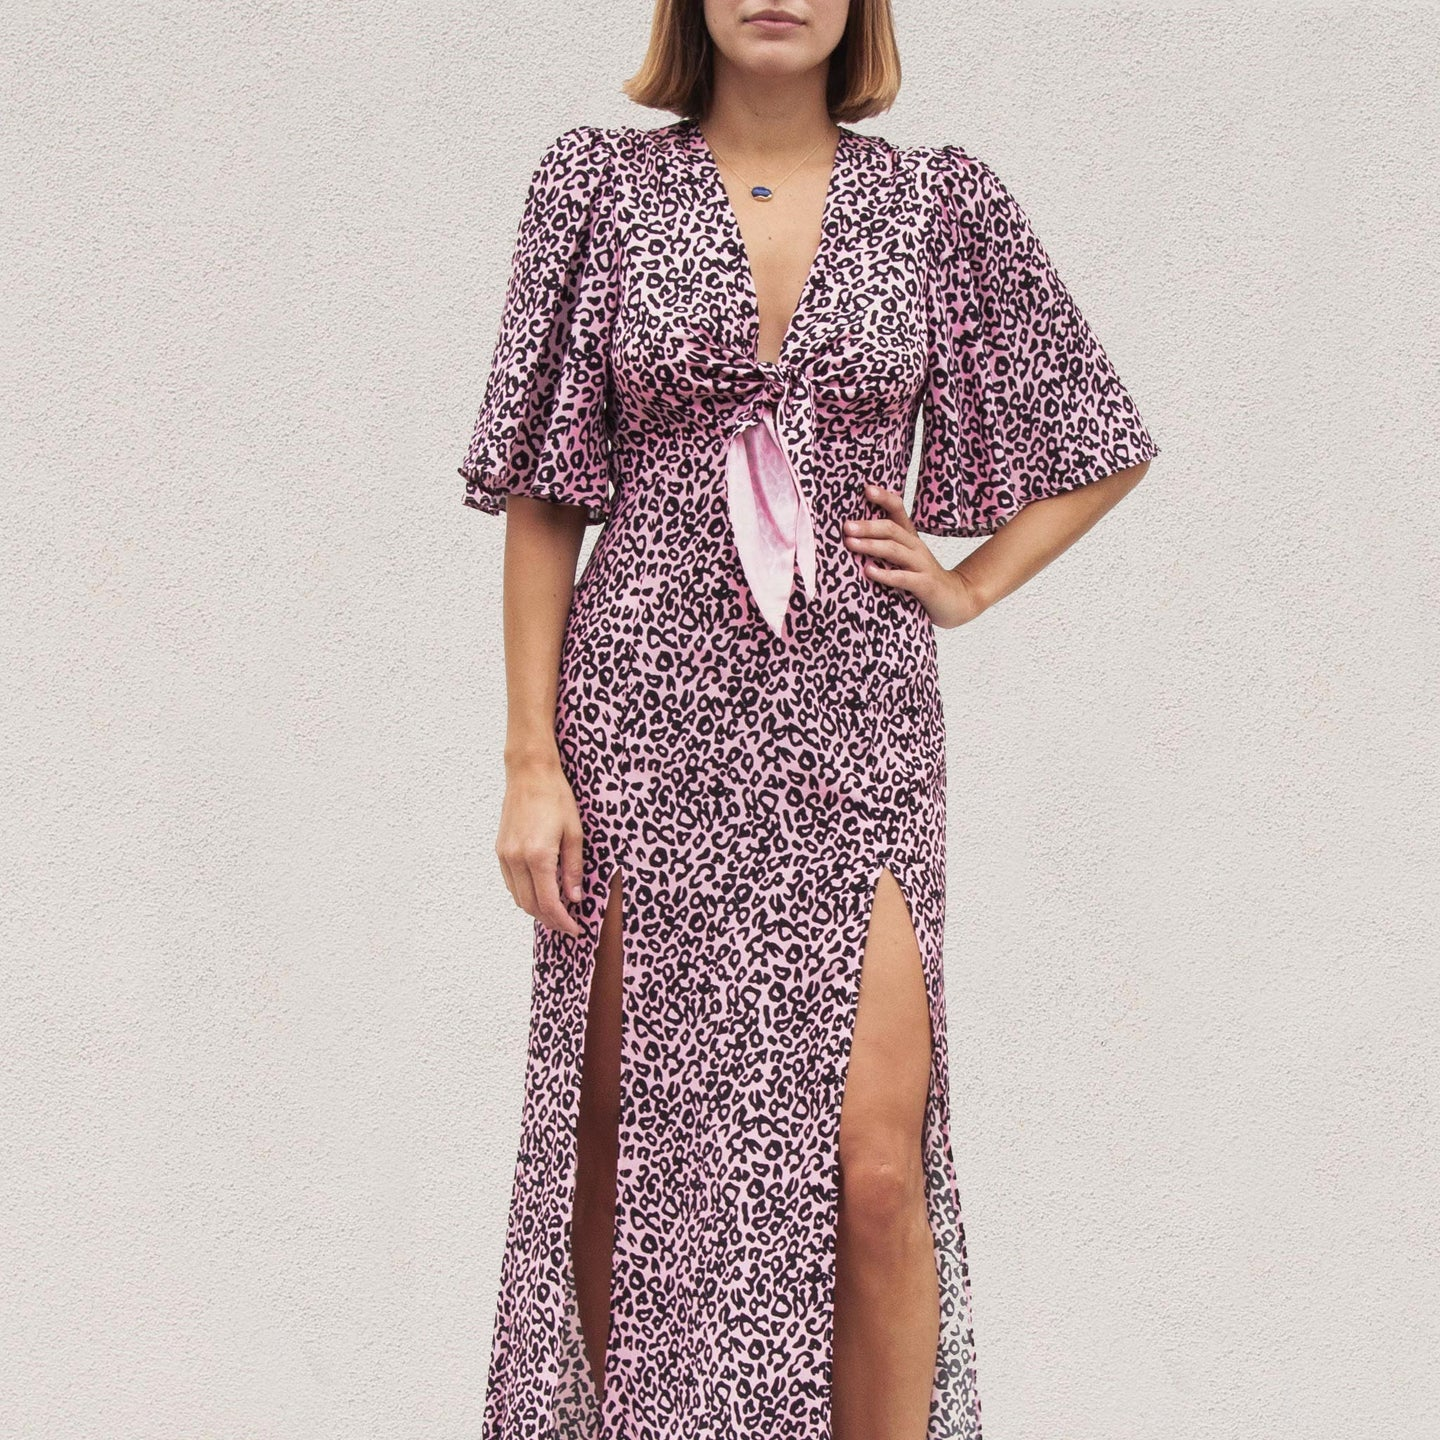 Les Reveries - Tie Front Flutter Sleeve Dress with Slits, front view, available at LCD.